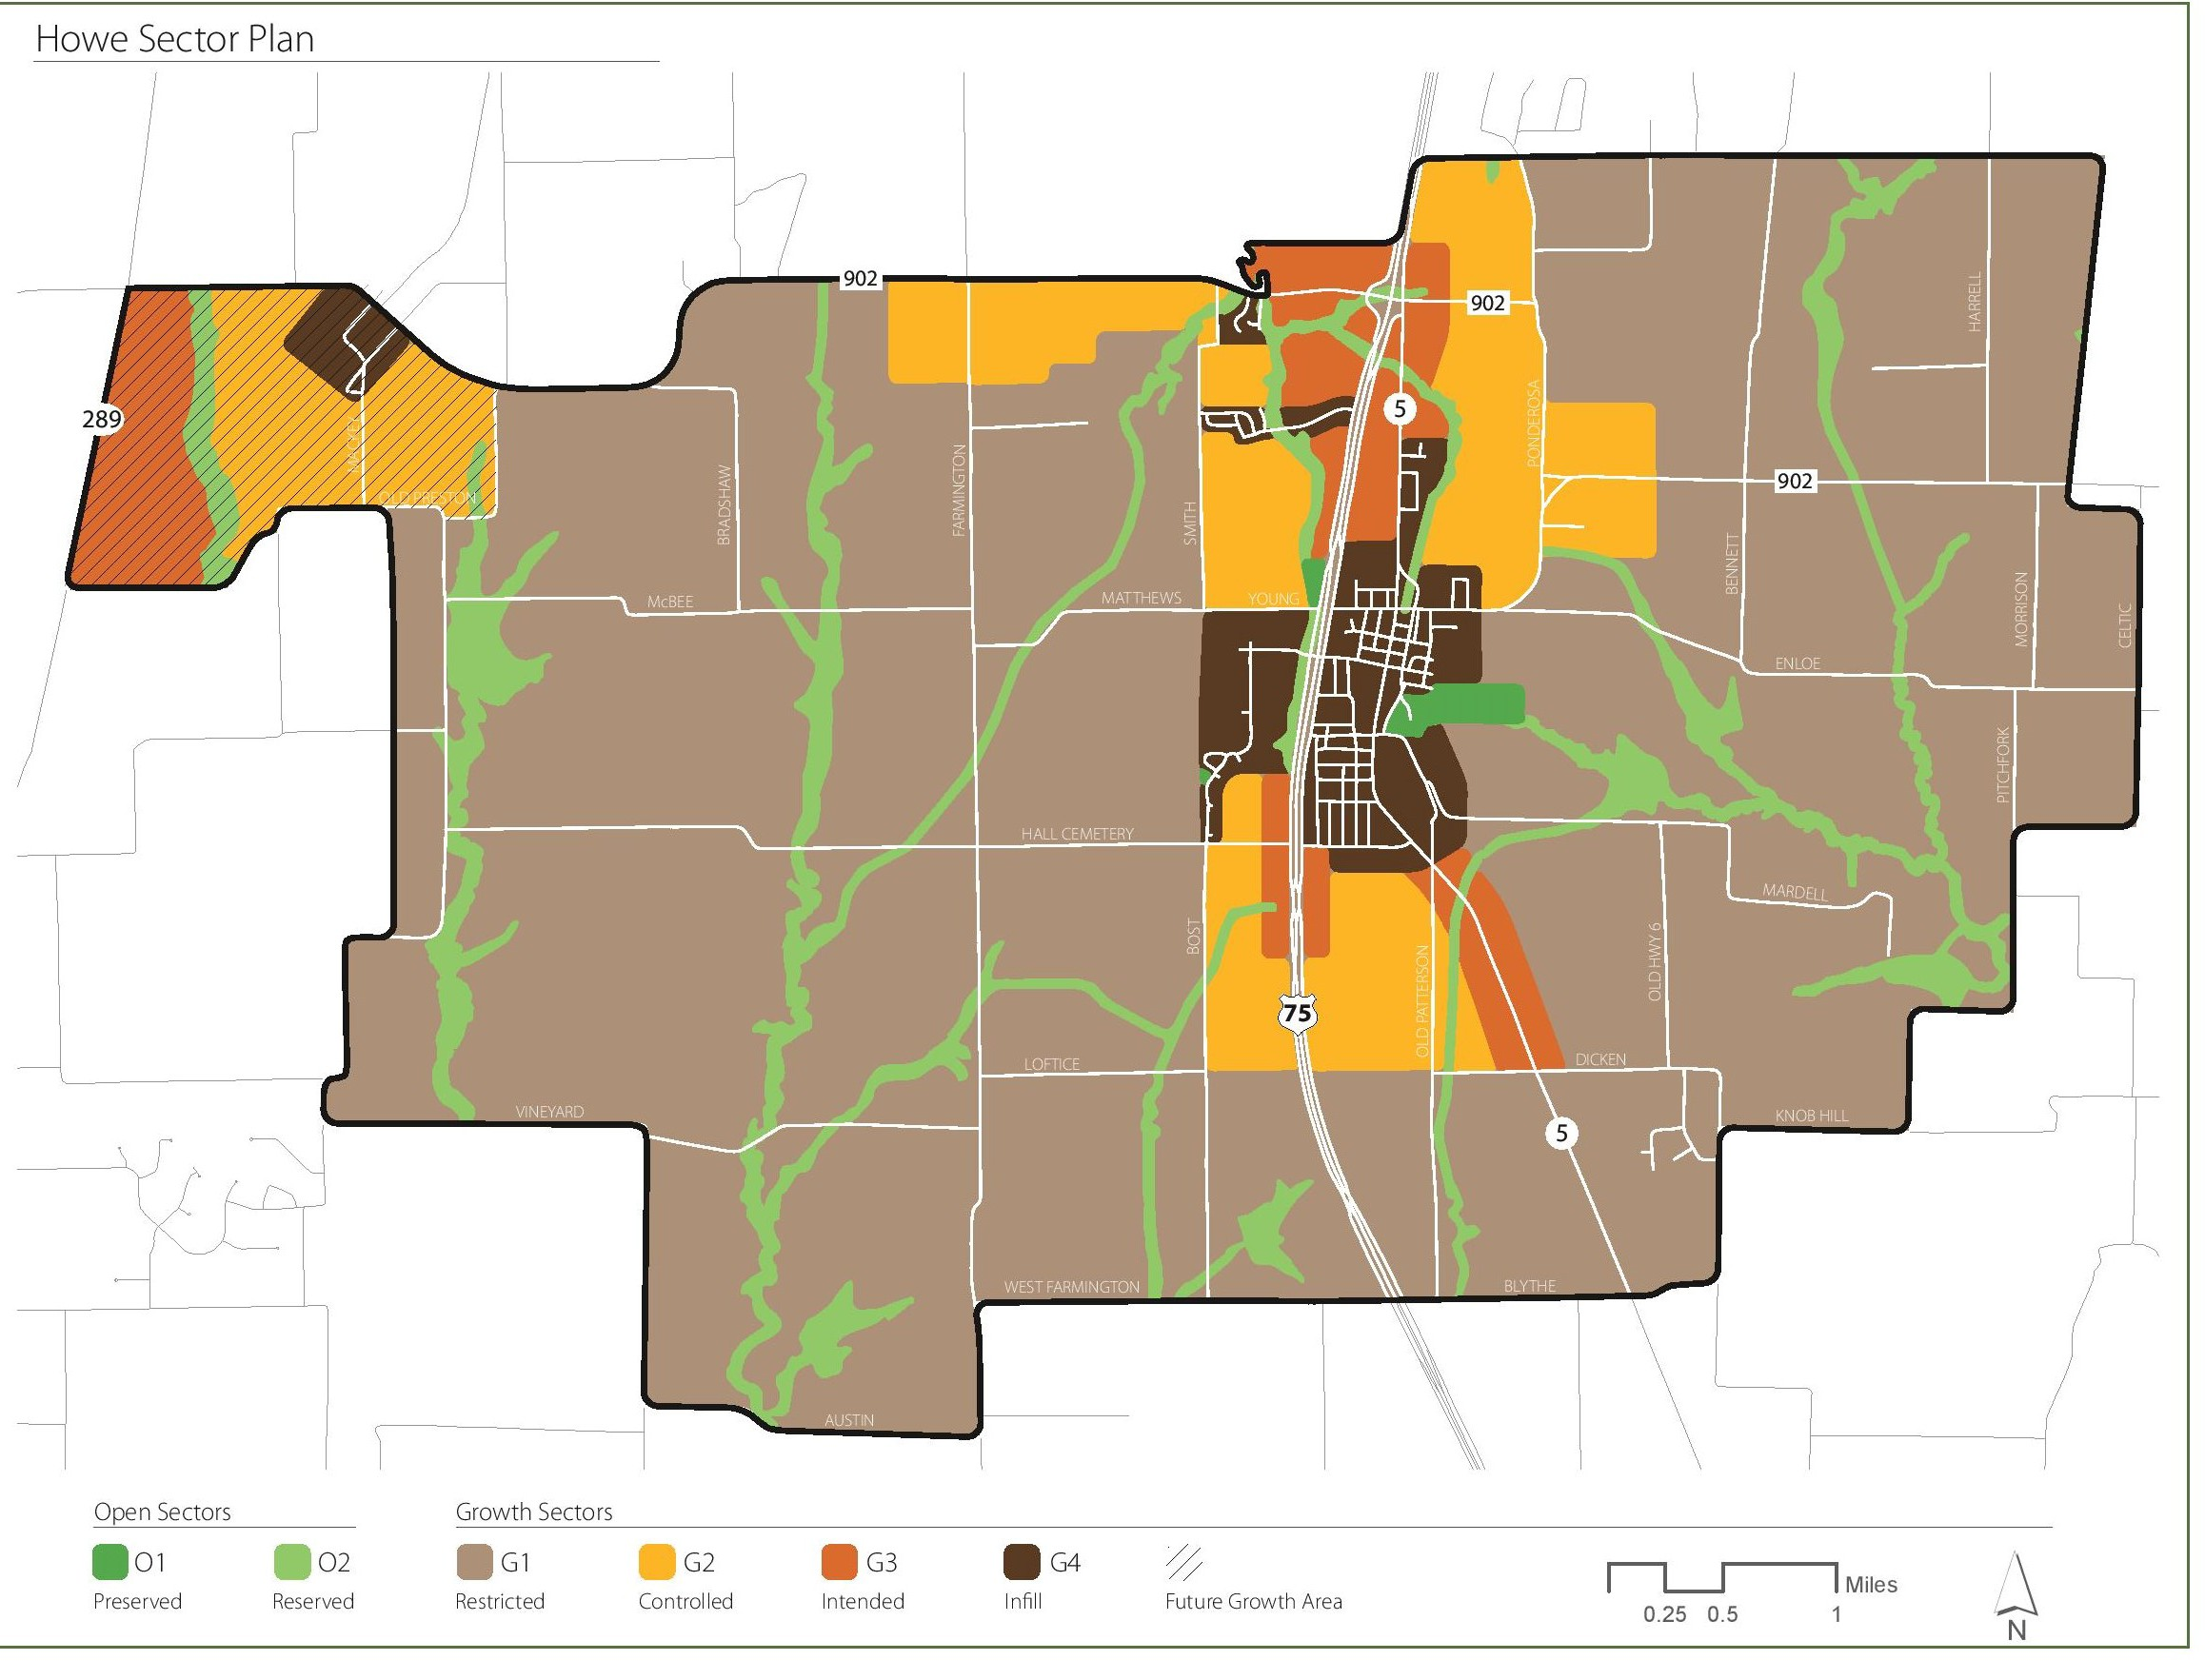 City-of-Howe_Comprehensive_Plan_FINAL_Adopted11-5-10-page-039-e1426300820835